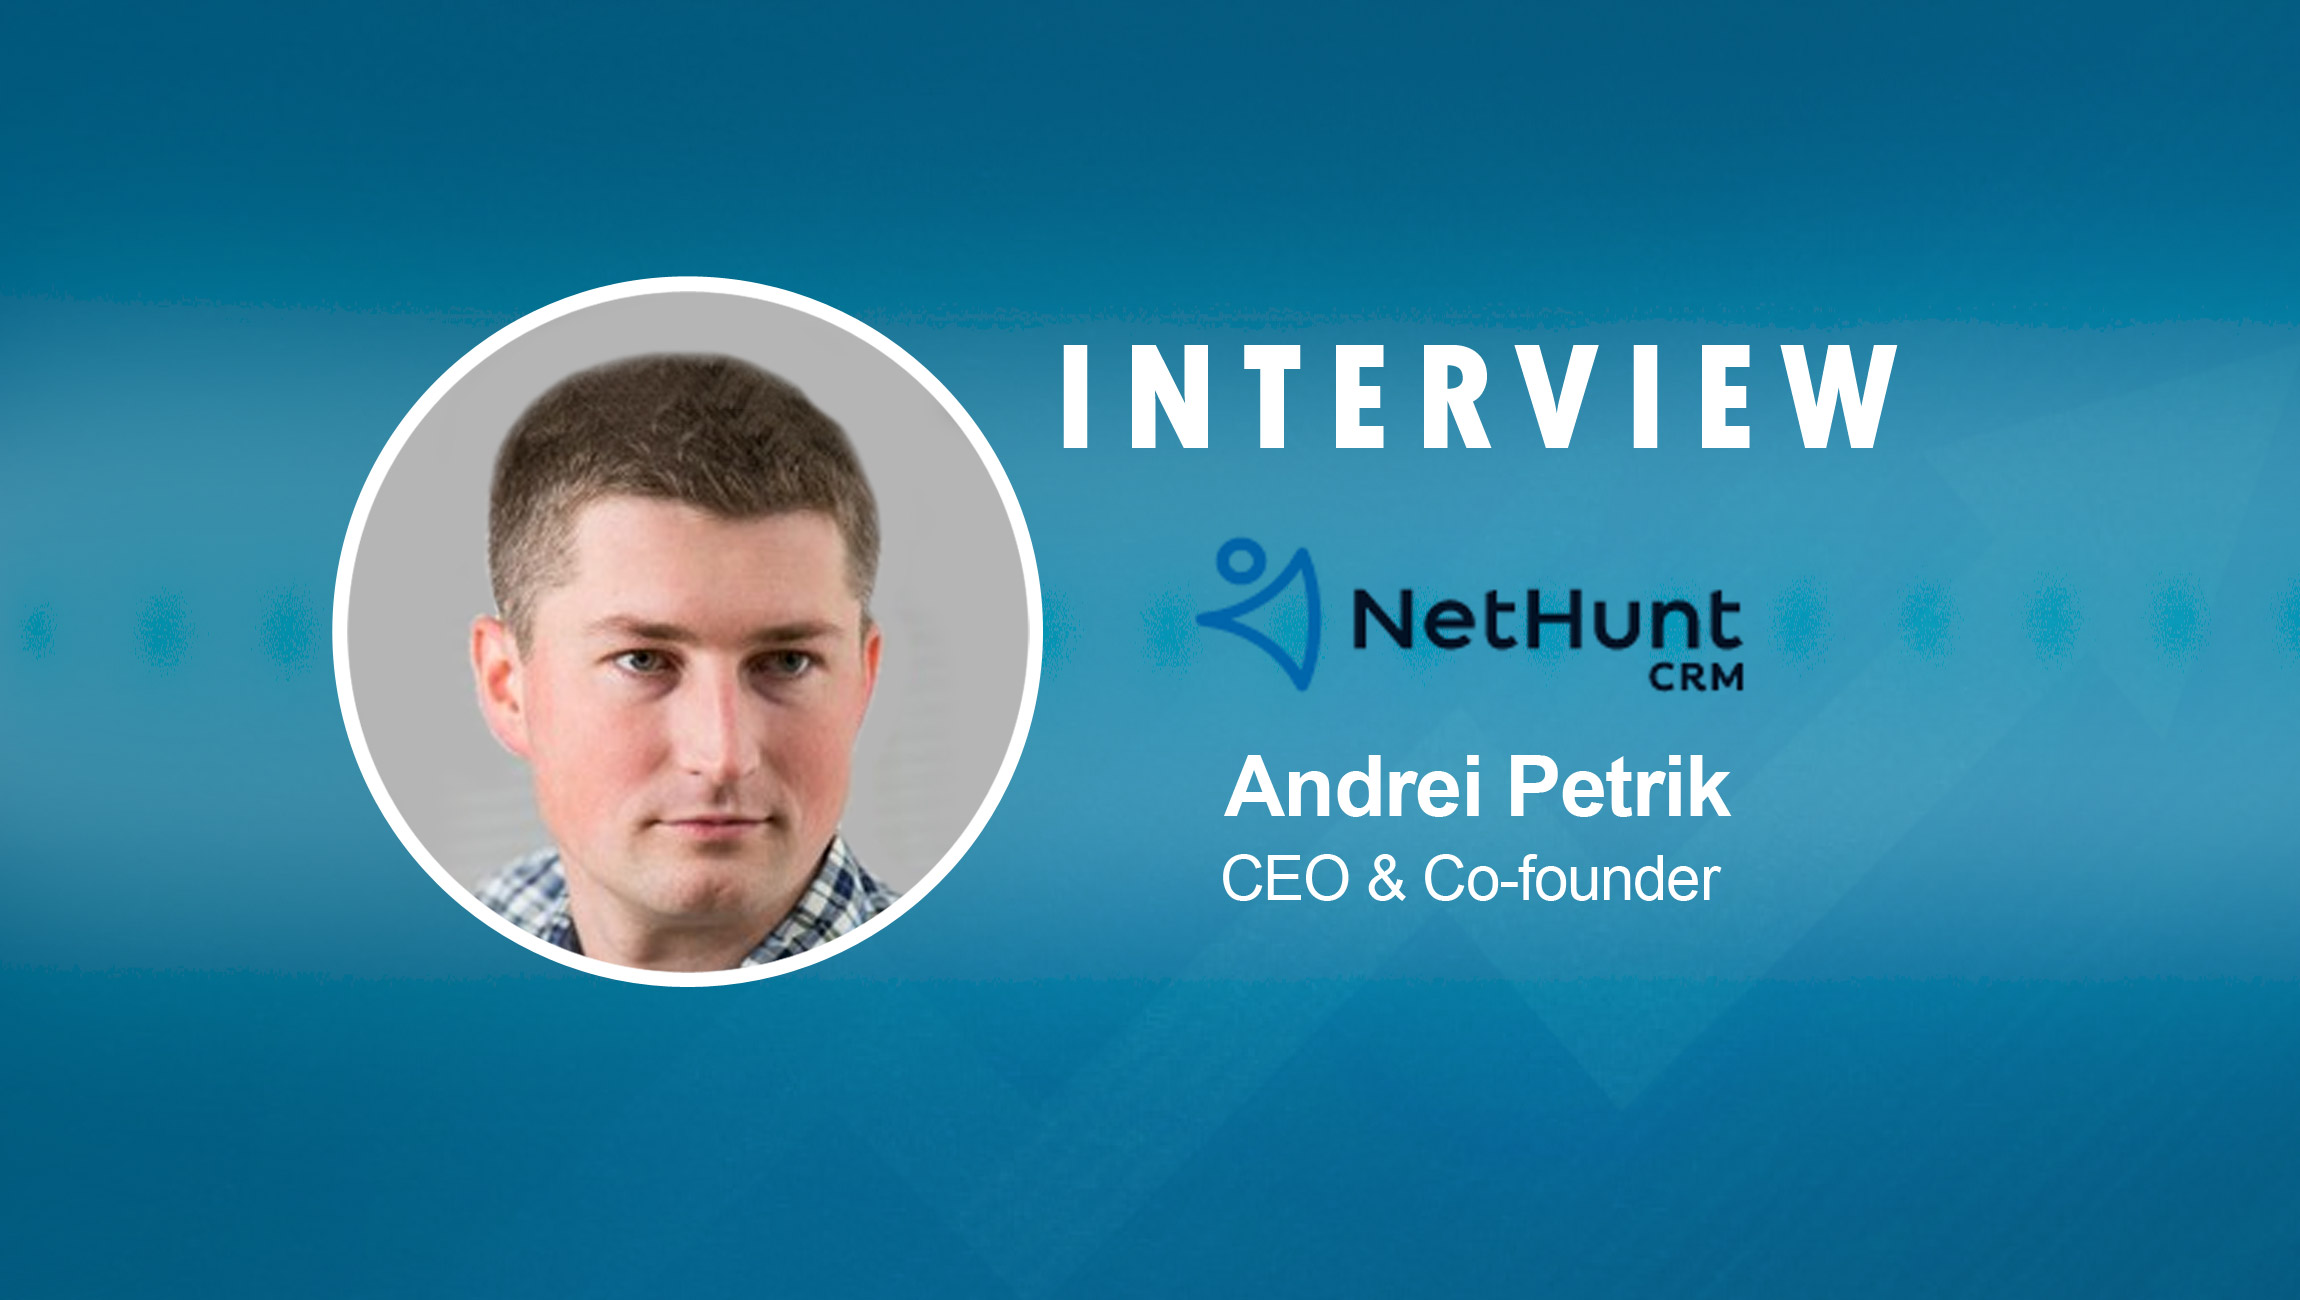 SalesTechStar Interview with Andrei Petrik, CEO & Co-founder at NetHunt CRM